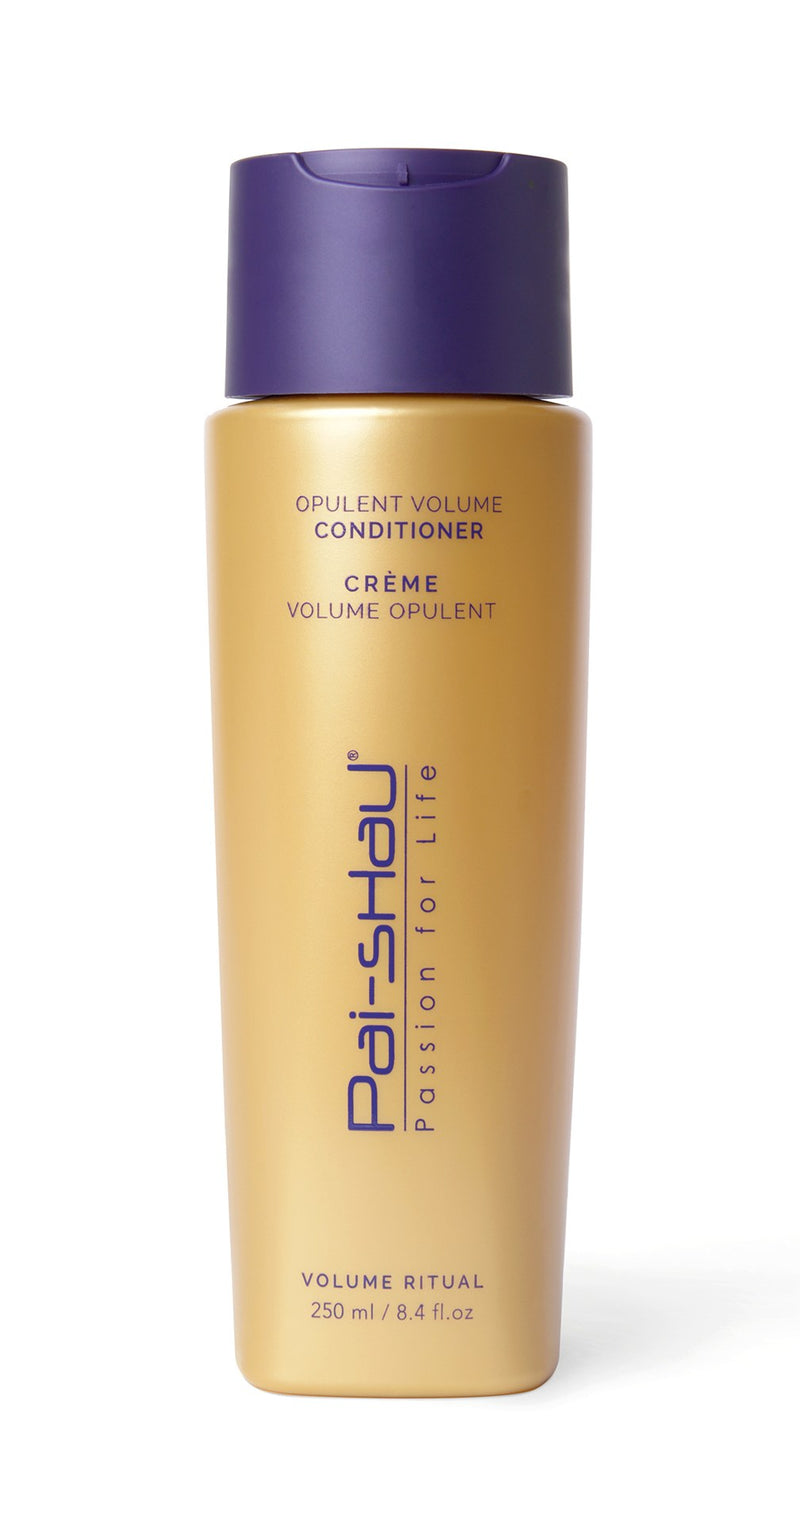 Opulent Volume Conditioner 250 ml